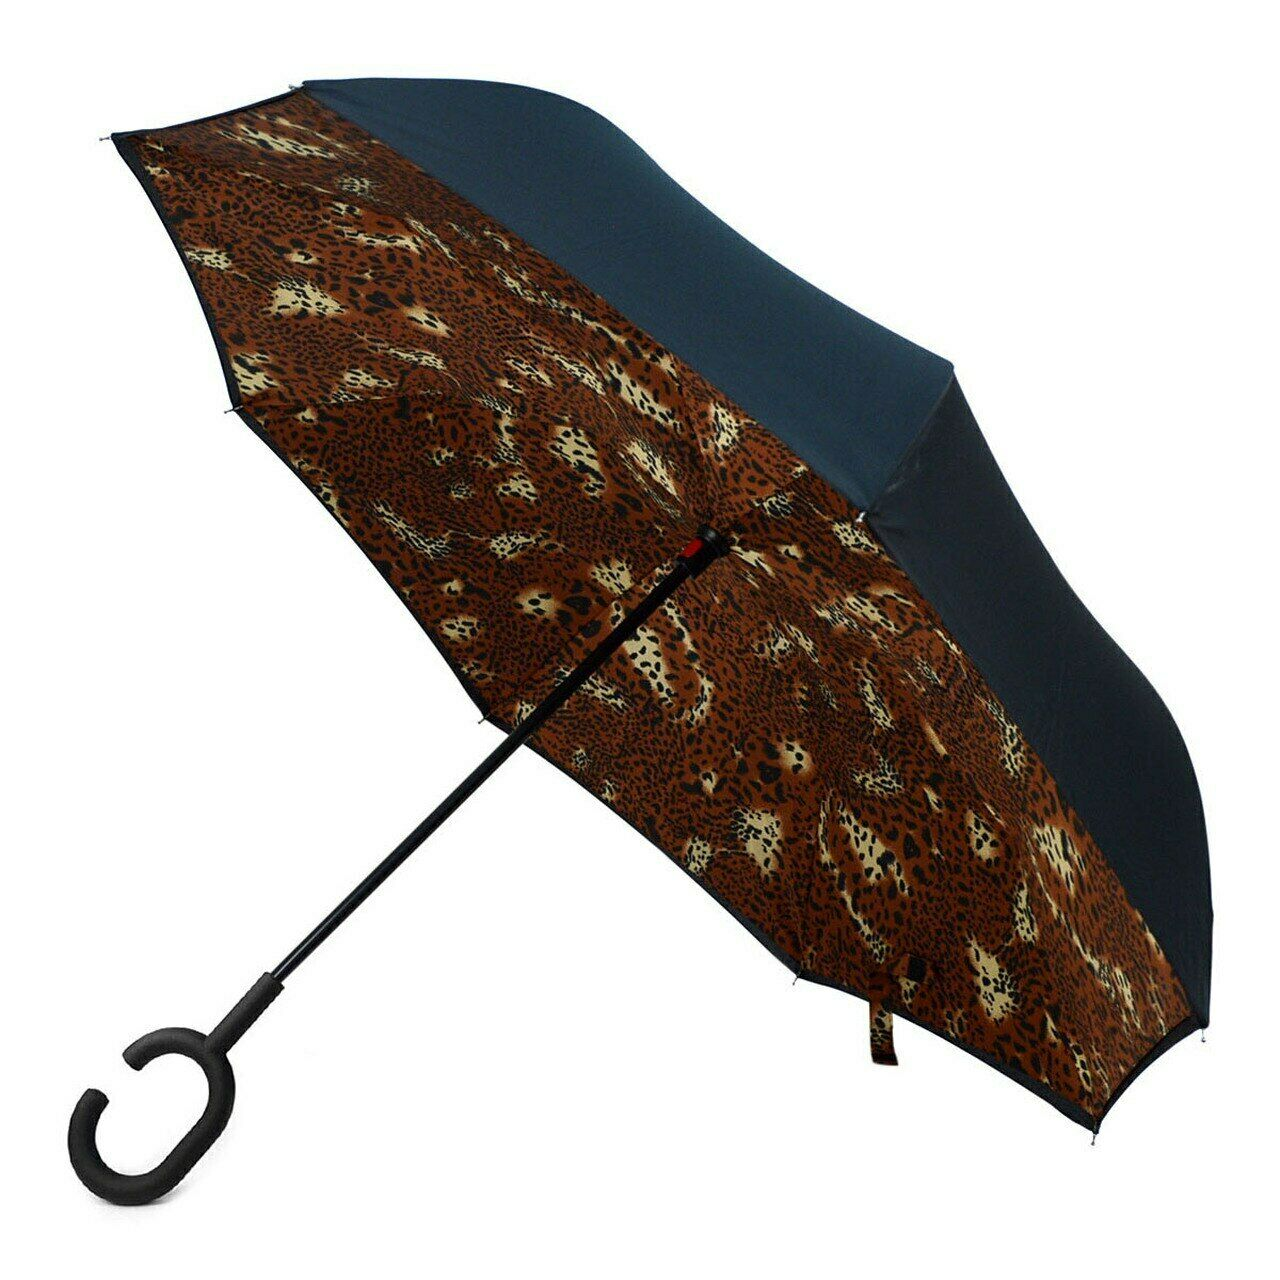 Inverted Umbrella Large C-Hook 49 IN LEOPARD Reverse Double Layer Windproof